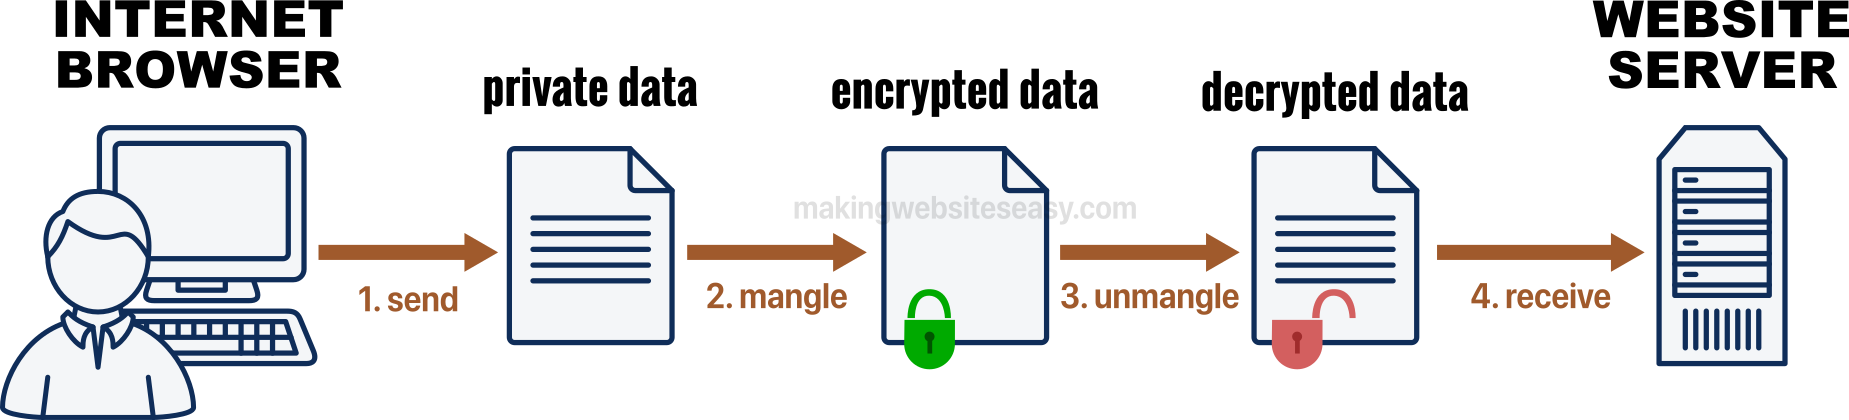 Personal data like credit card information can be sent securely over https.